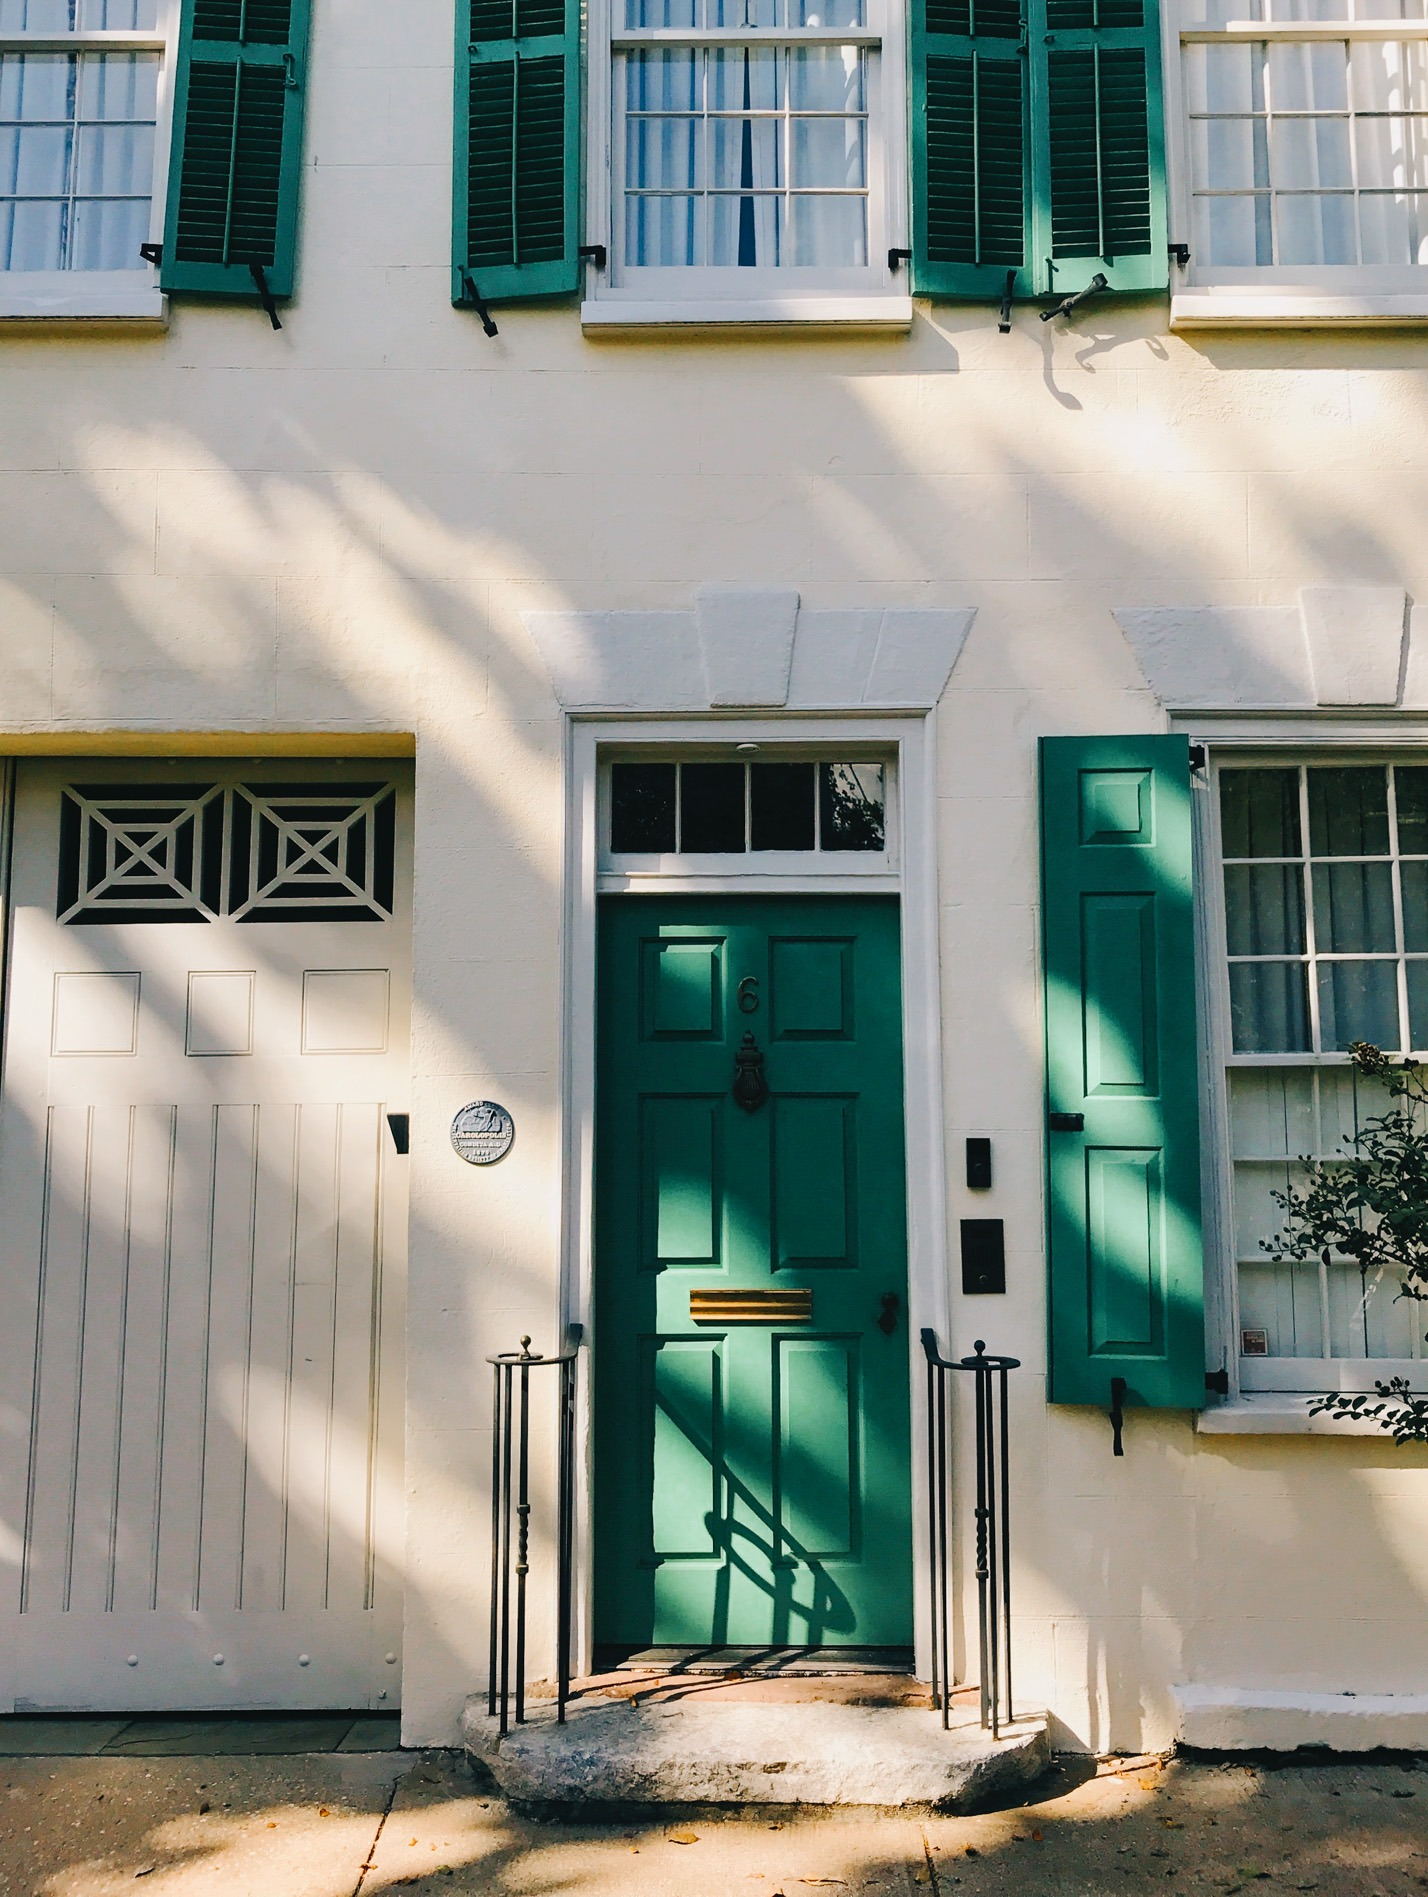 Wood and Spoon Charleston the ins and outs of what to see and do while visiting Charleston South Carolina. This is a foodie guide to a great Southern seaside east coast destination. Great for traveling with family sight seeing and loads to do.